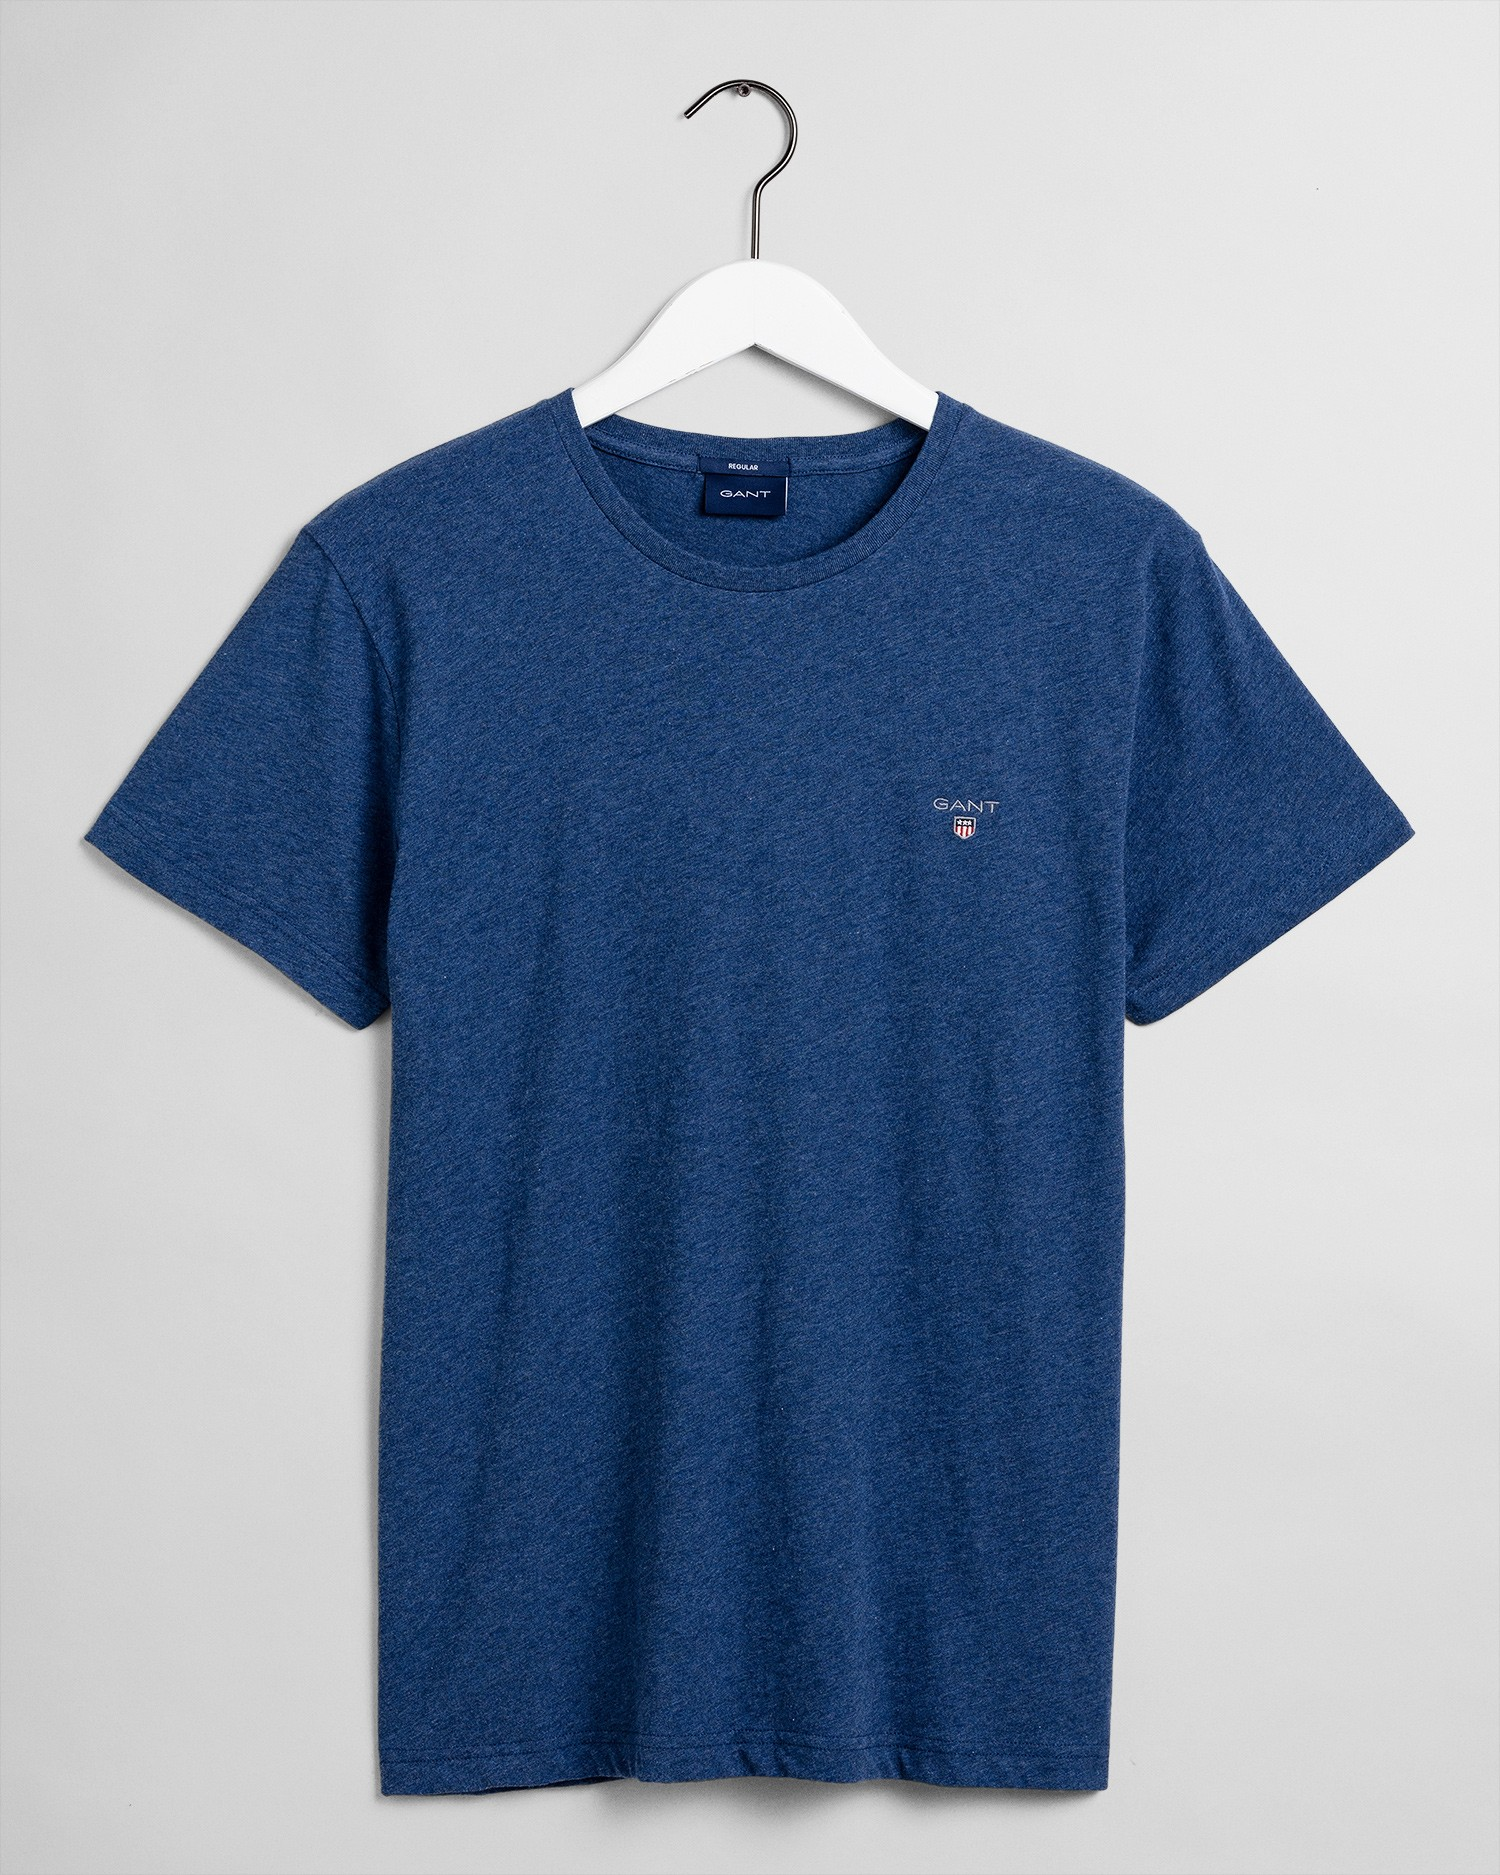 GANT Men's T-Shirt - 234100